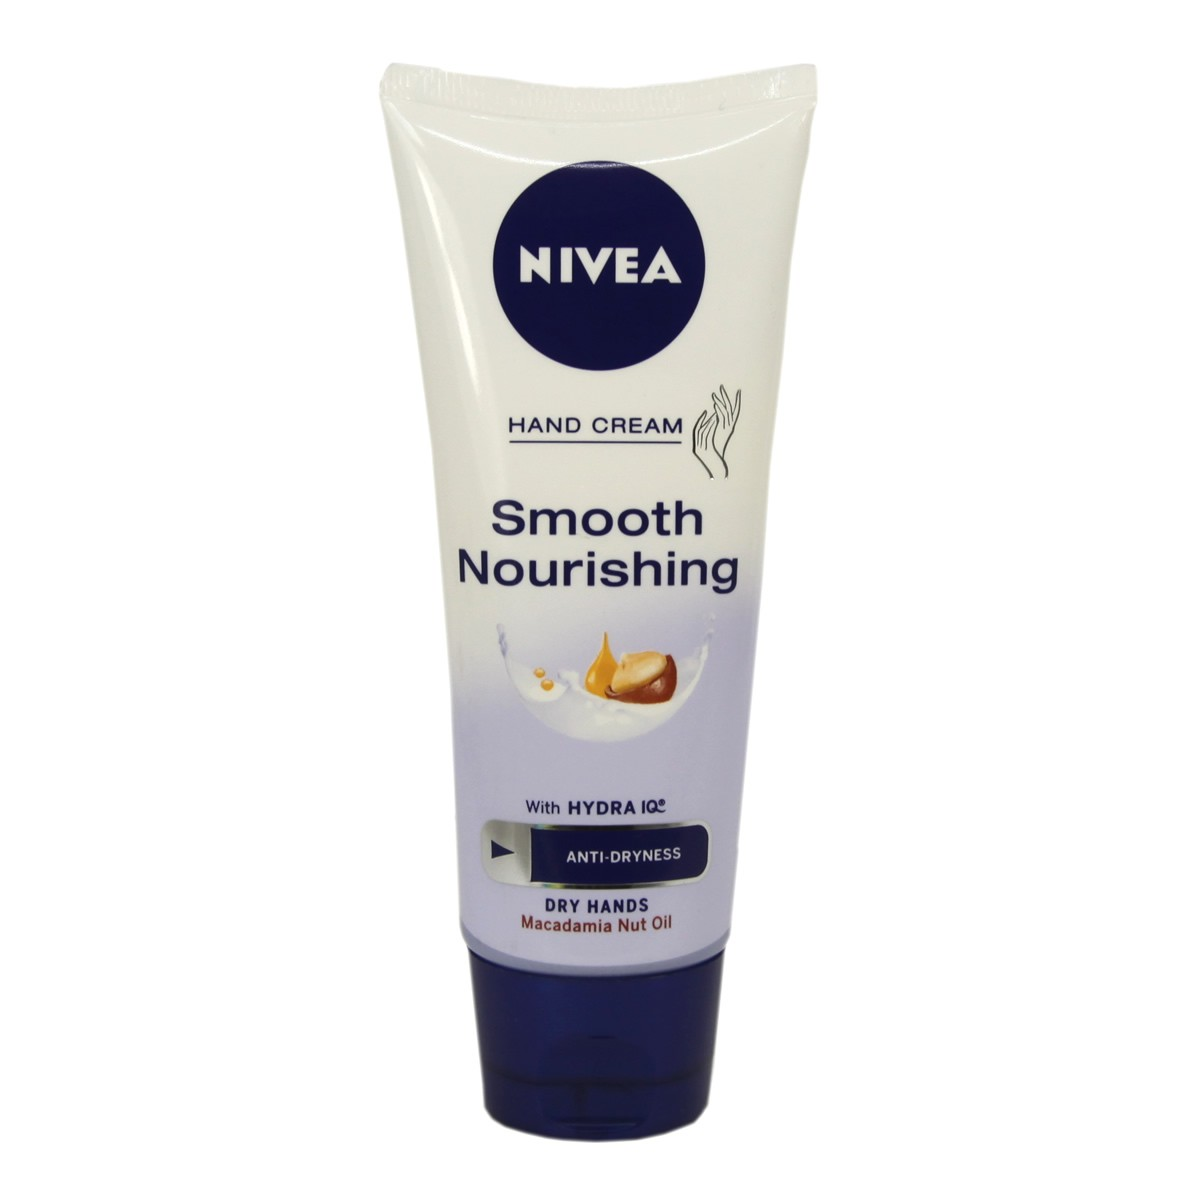 Nivea Smooth Nourishing Hand Cream